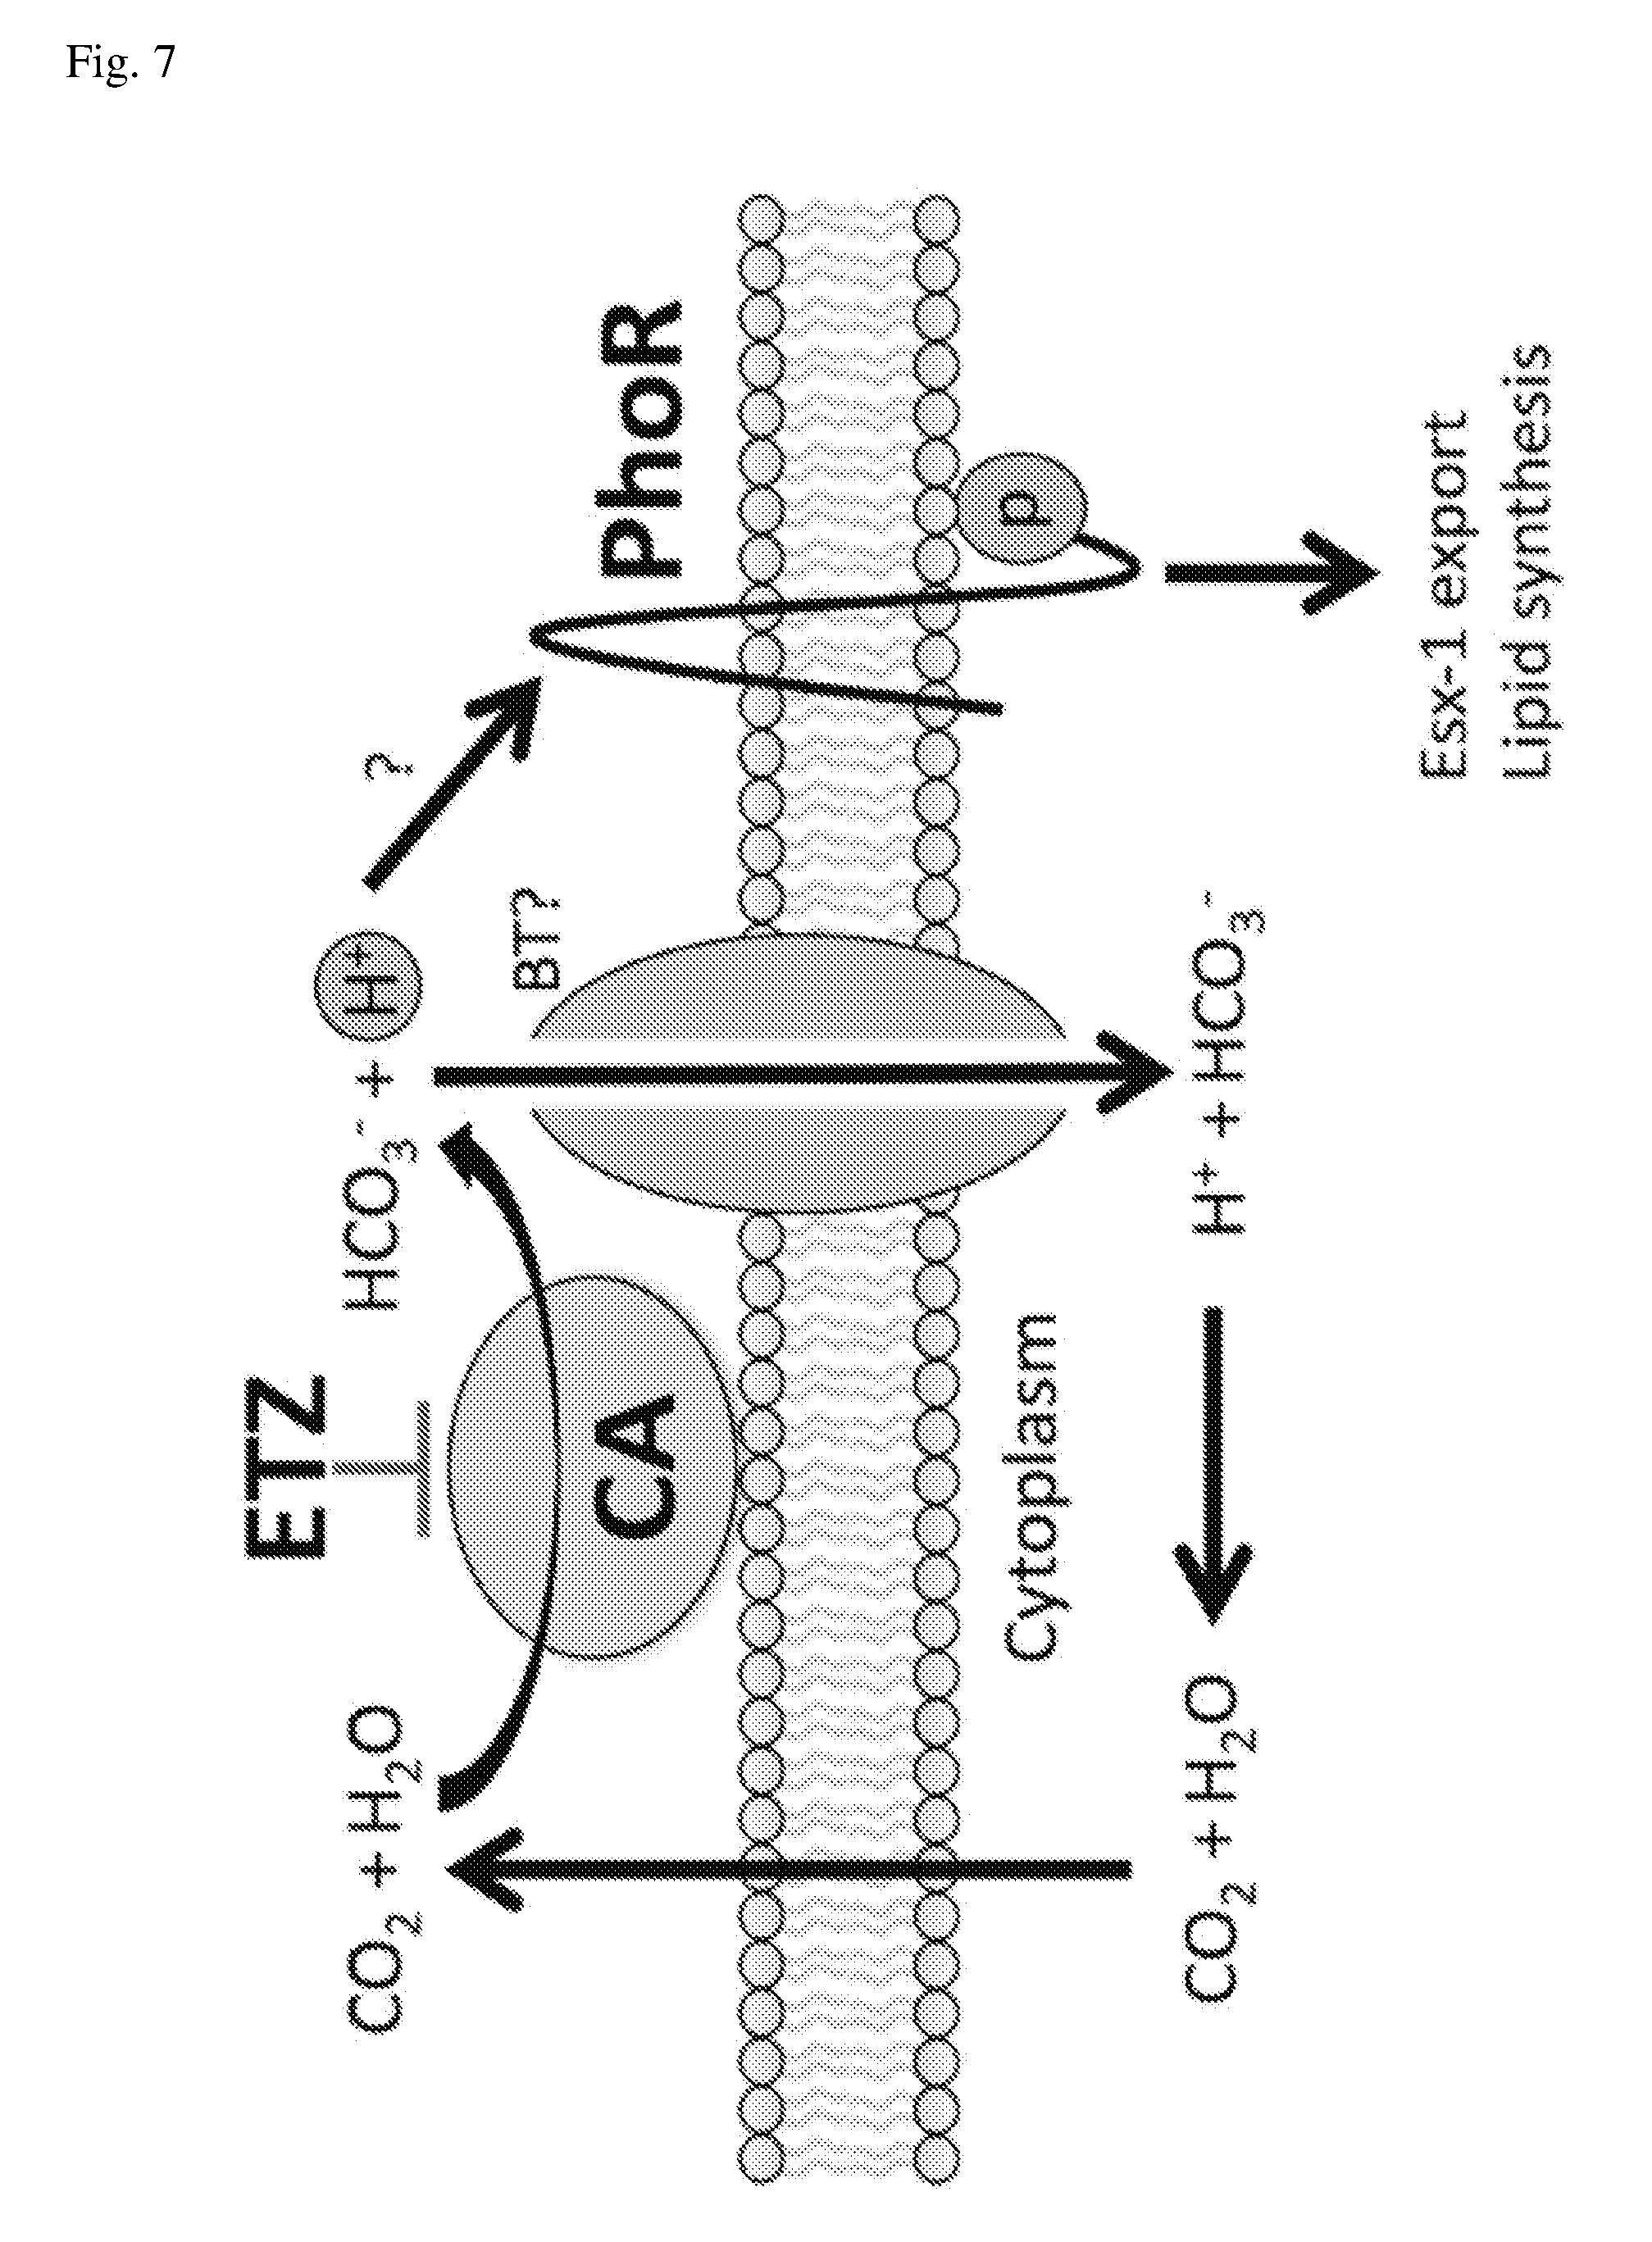 US20180085355A1 - Compositions and Methods for Inhibiting